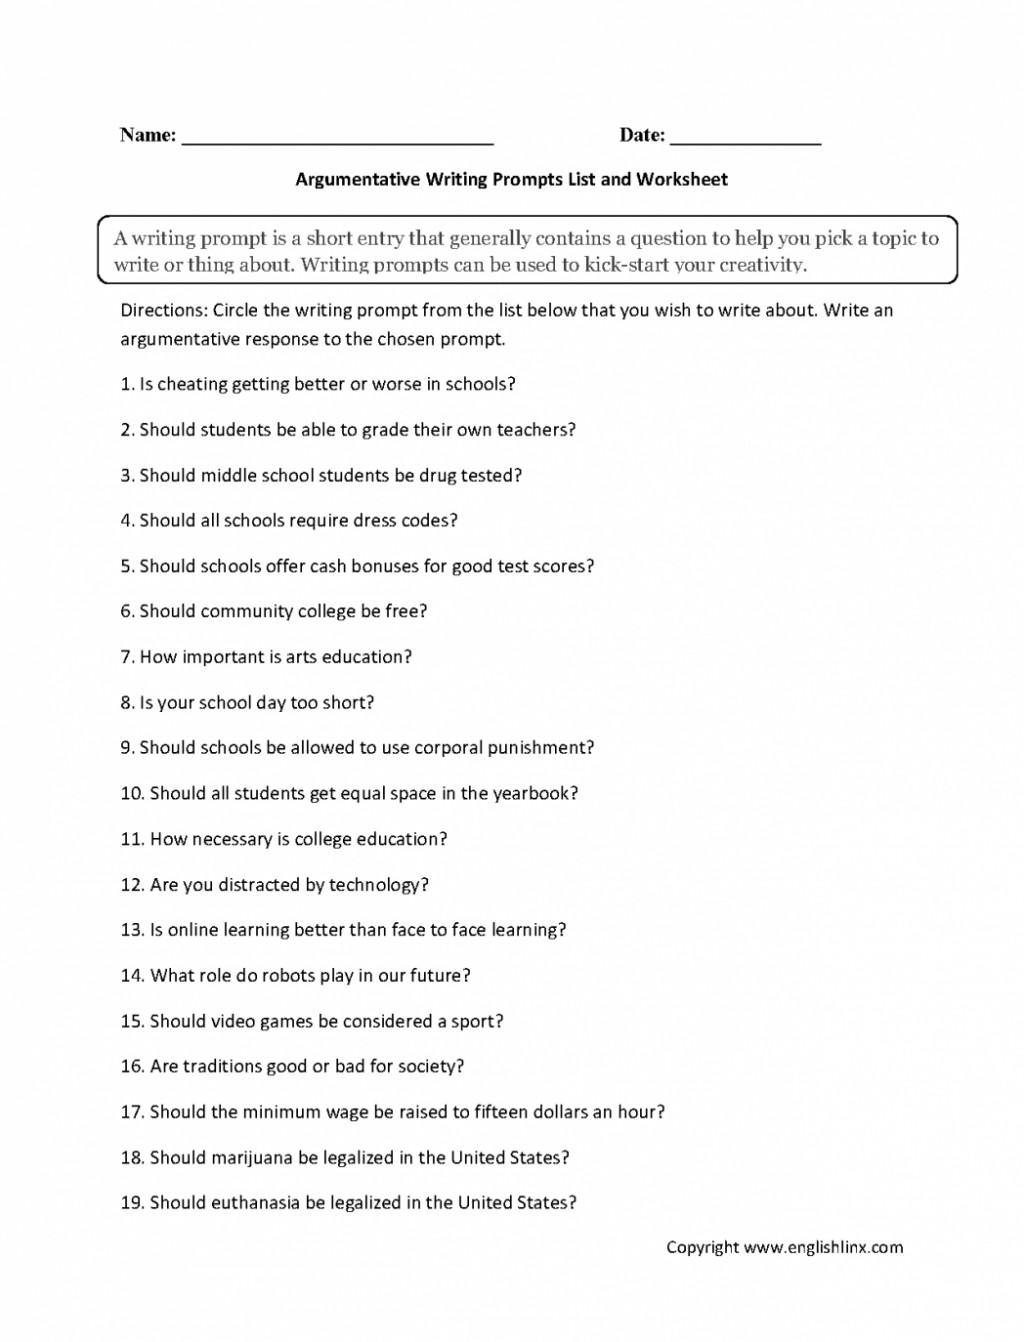 002 Essay Writing Prompts Example Argument Goal Blockety Co For College Argumentative List Work High School Students Adults 5th Grade Middle Elementary 6th 9th Formidable Narrative 5 Paragraph Large